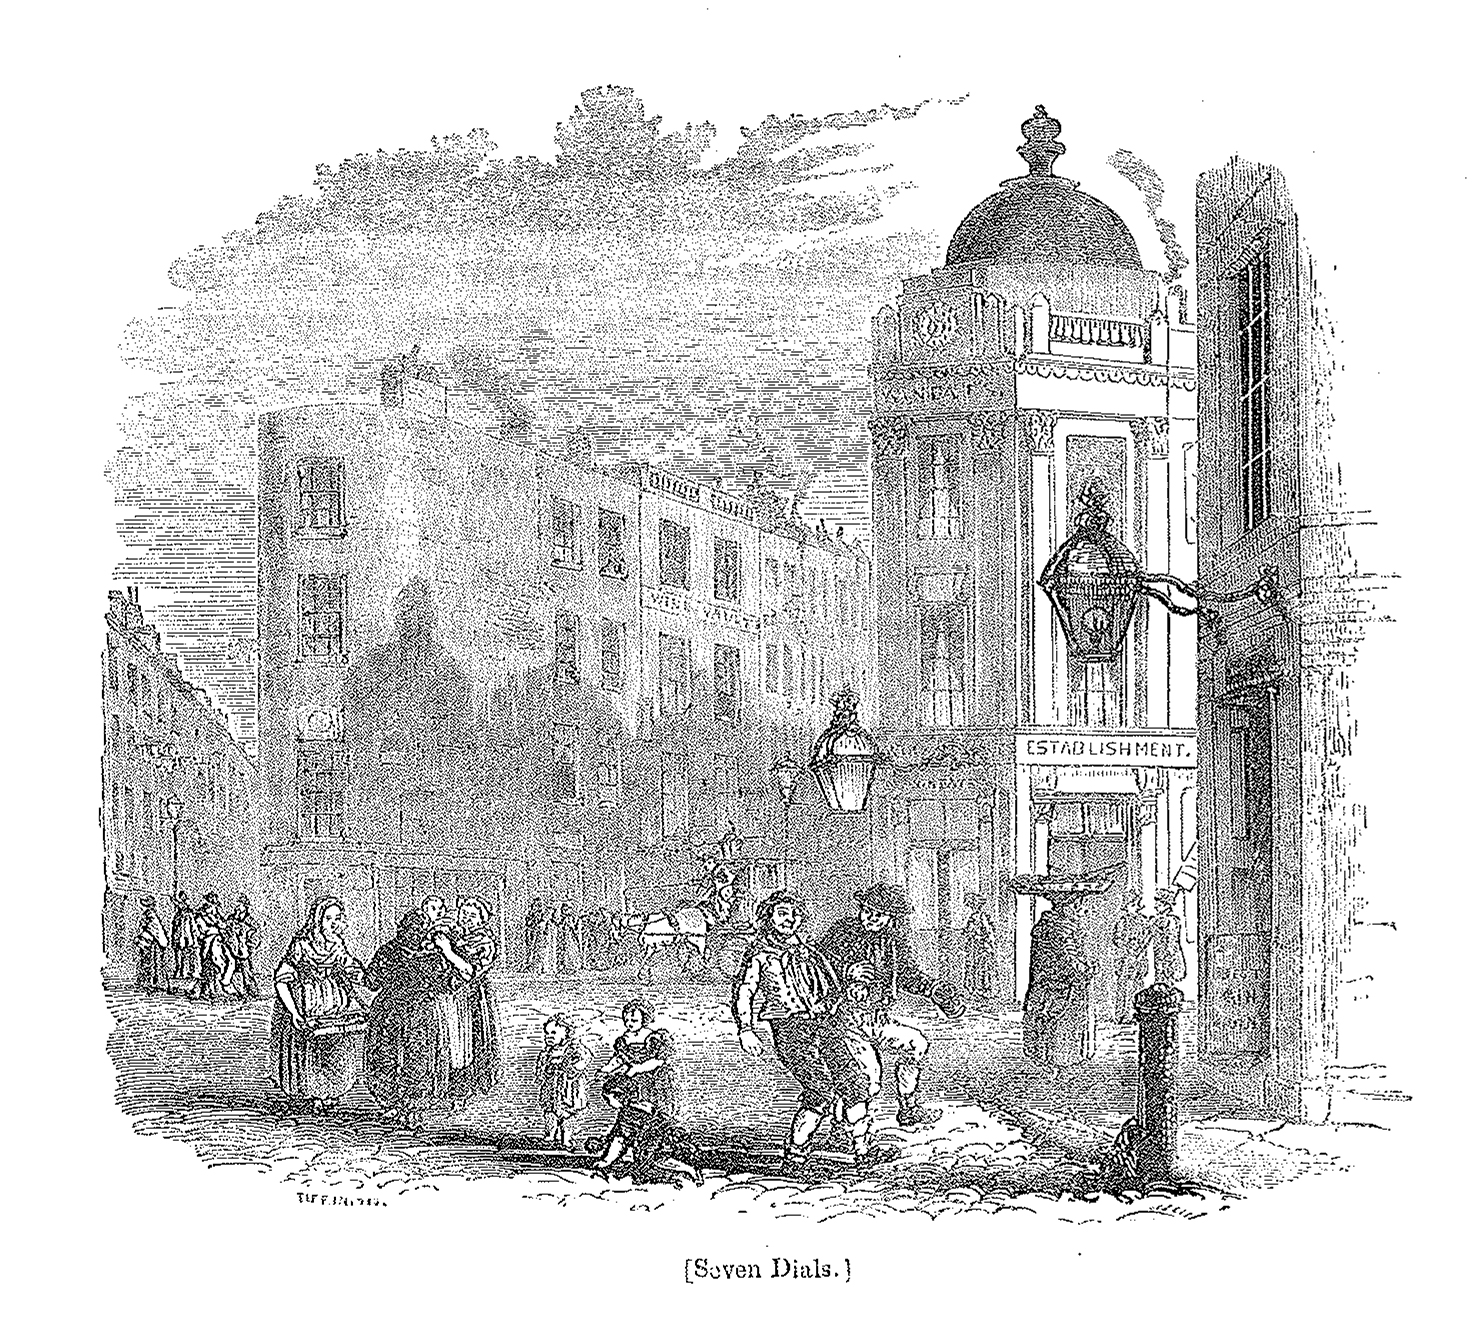 'Seven Dials' - Illustration from Knight's 'LONDON' 1842